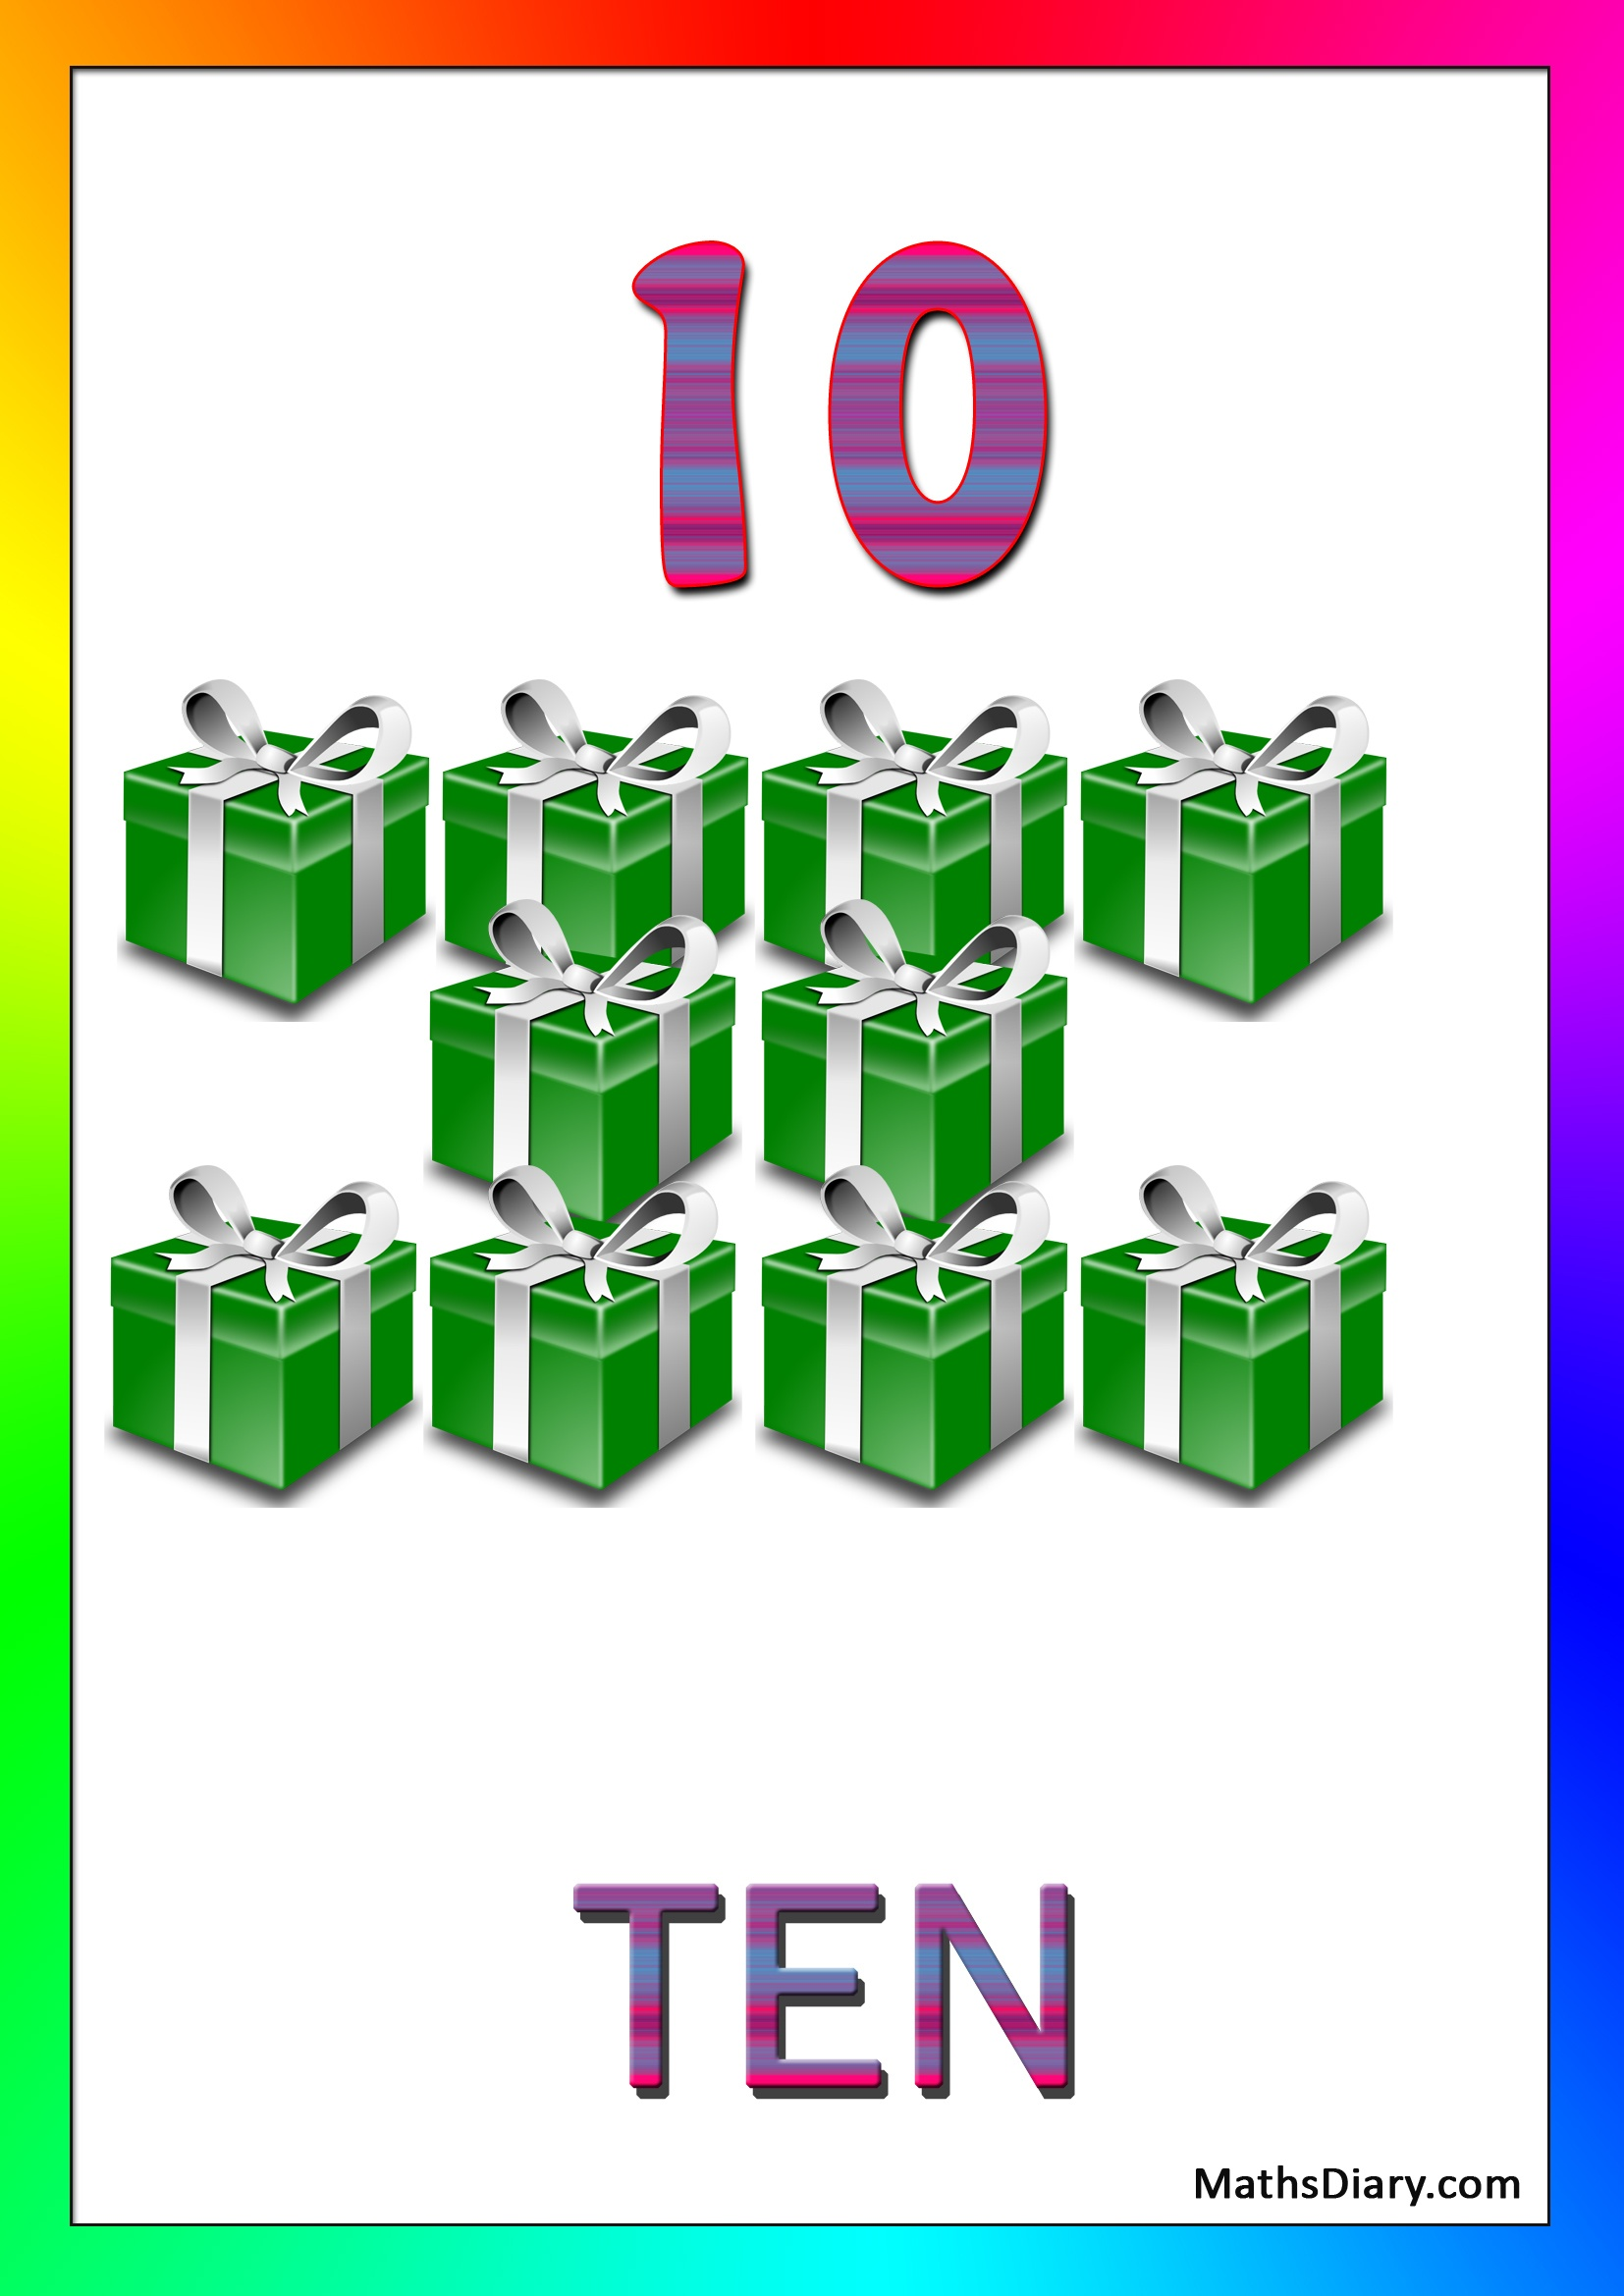 Learning Counting And Recognition Of Number 10